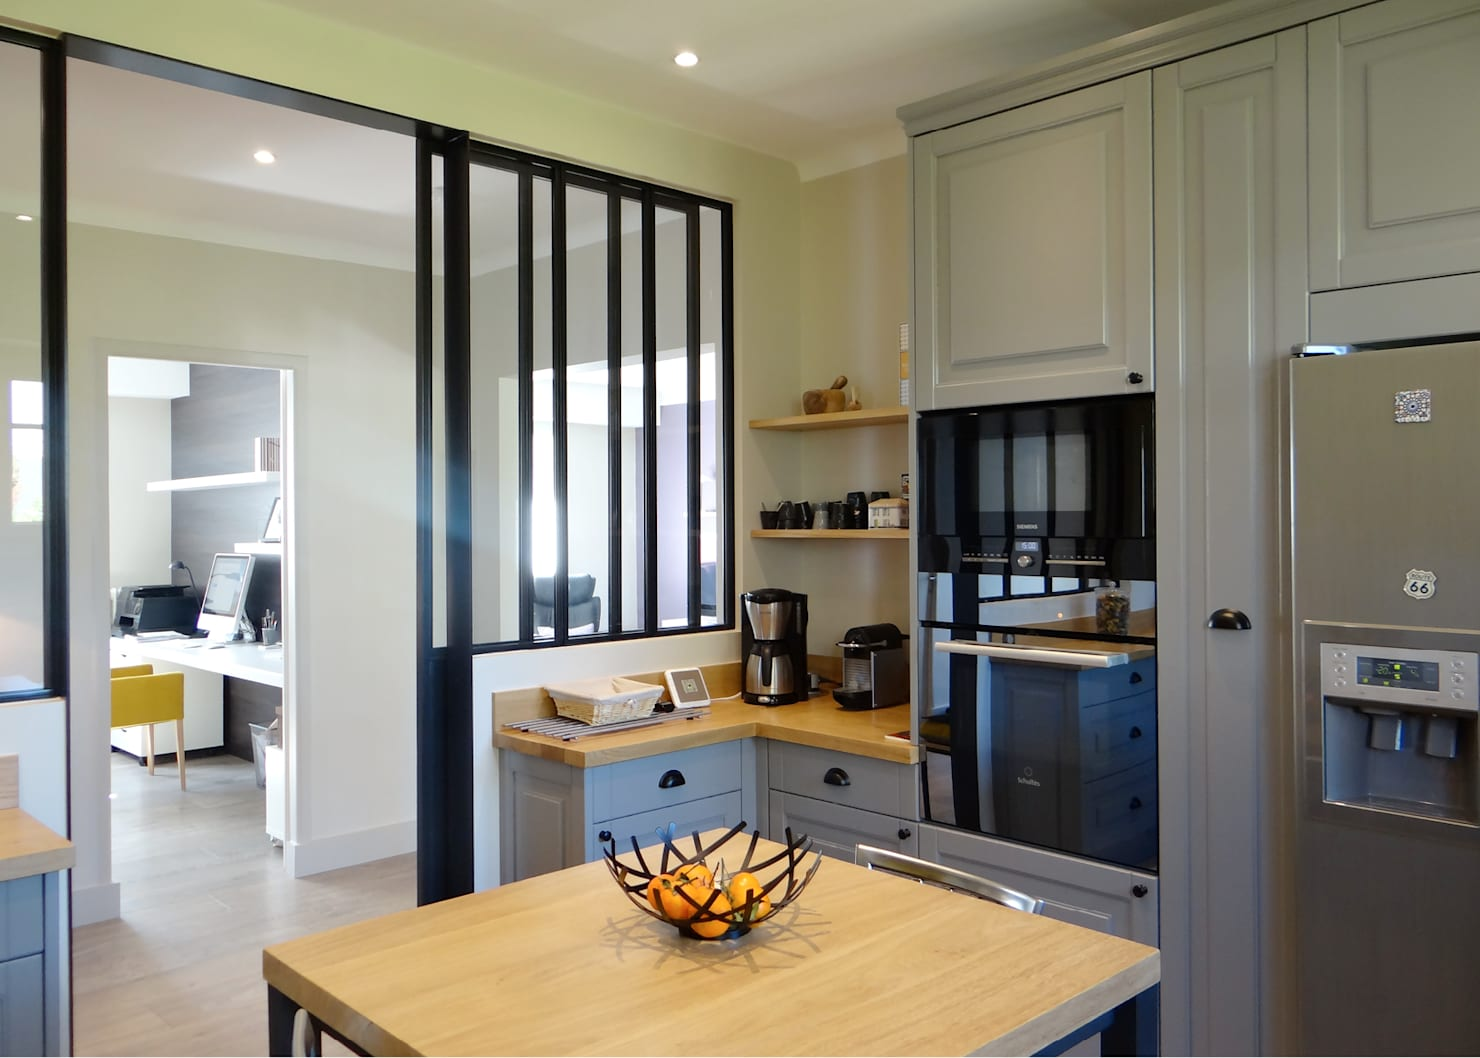 glass-doors-.. 80+ Unusual Kitchen Design Ideas for Small Spaces in 2021